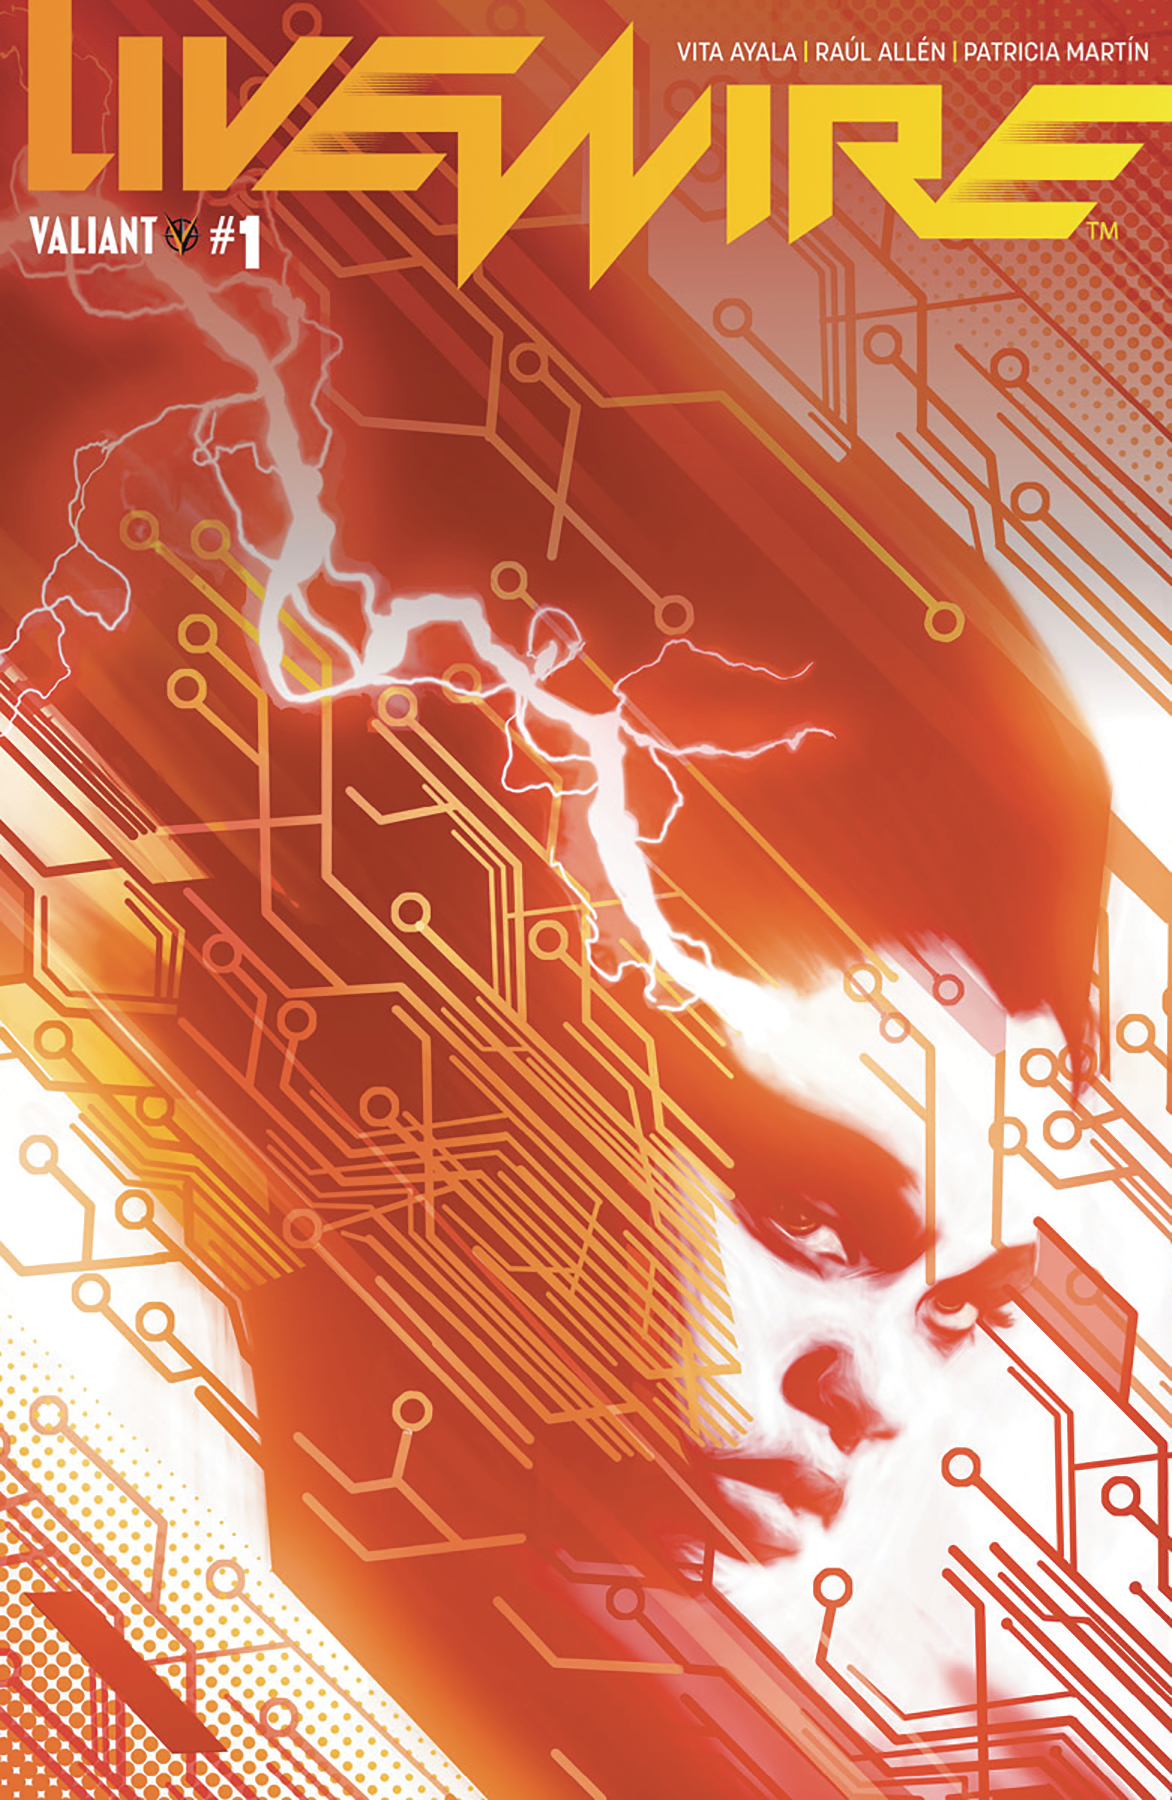 Livewire #1  is out 12/19